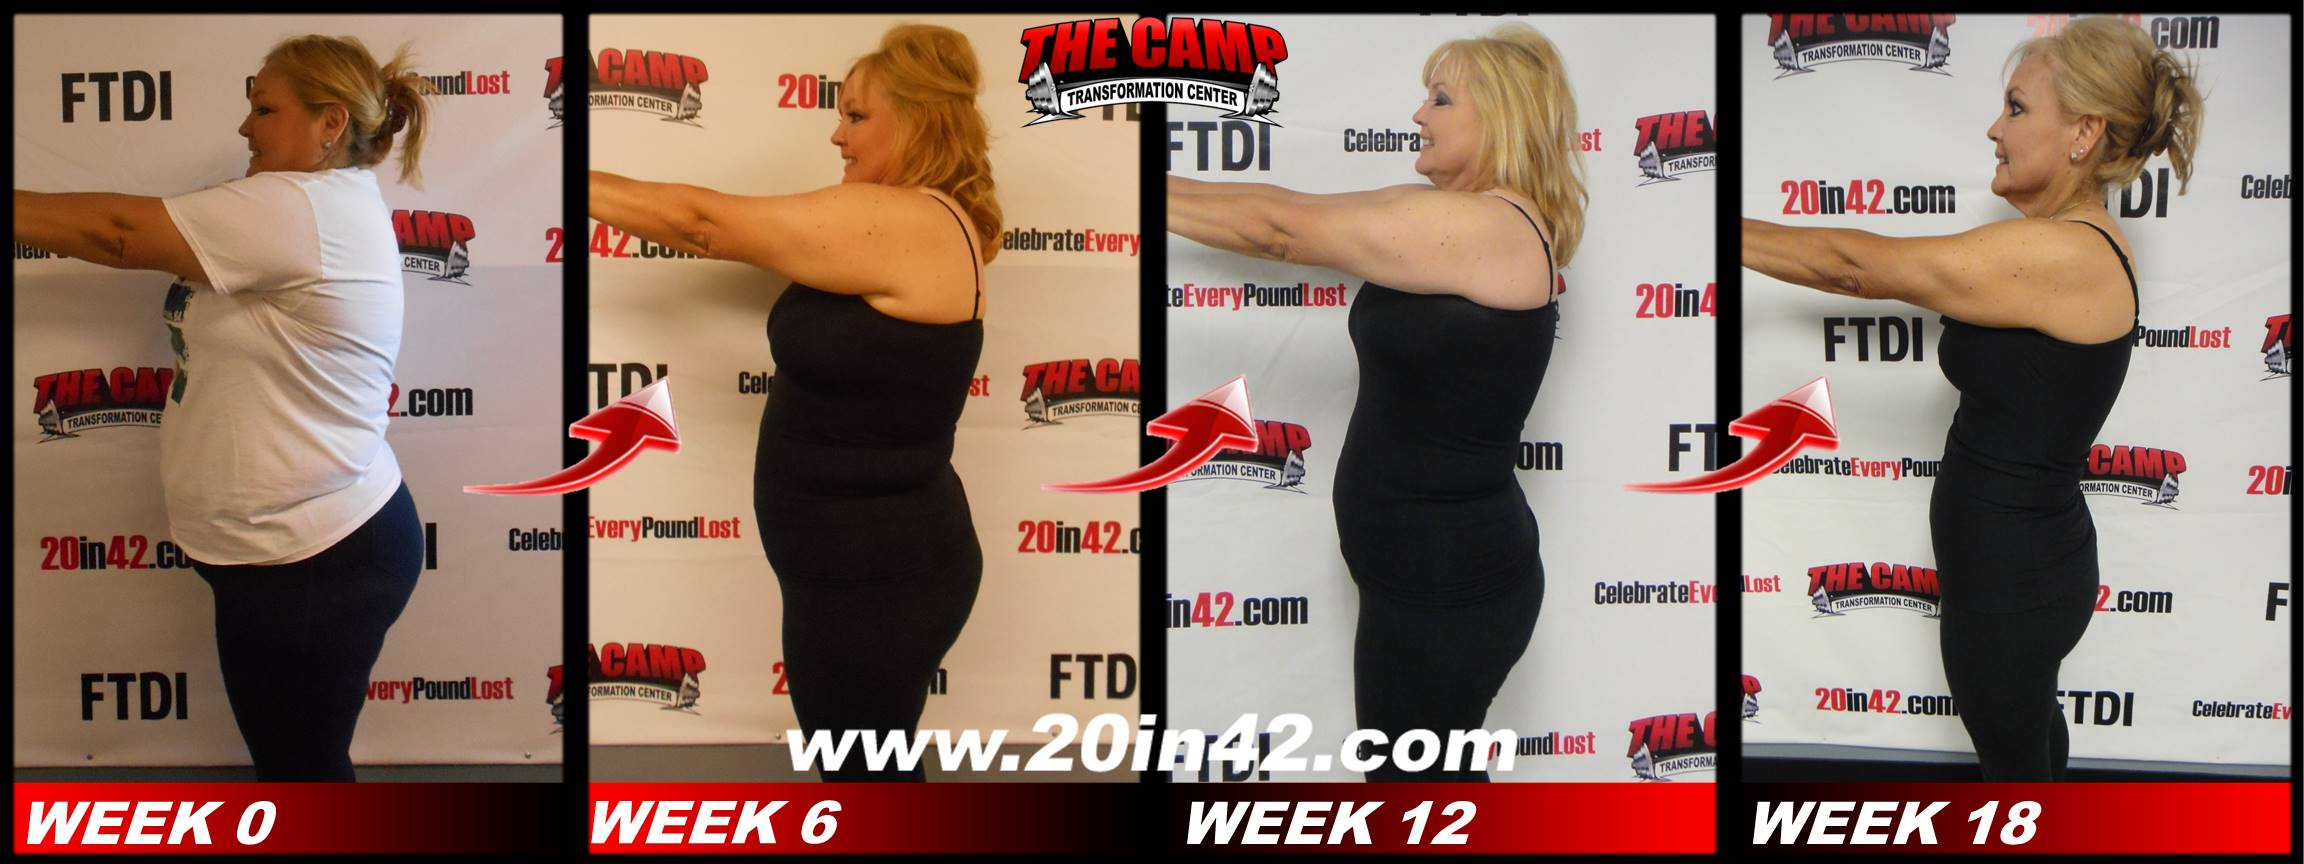 4 profile images of the same woman as in previous pictures, showing her weight loss after 6 weeks, 12 weeks, and 18 weeks in the weight loss challenge program